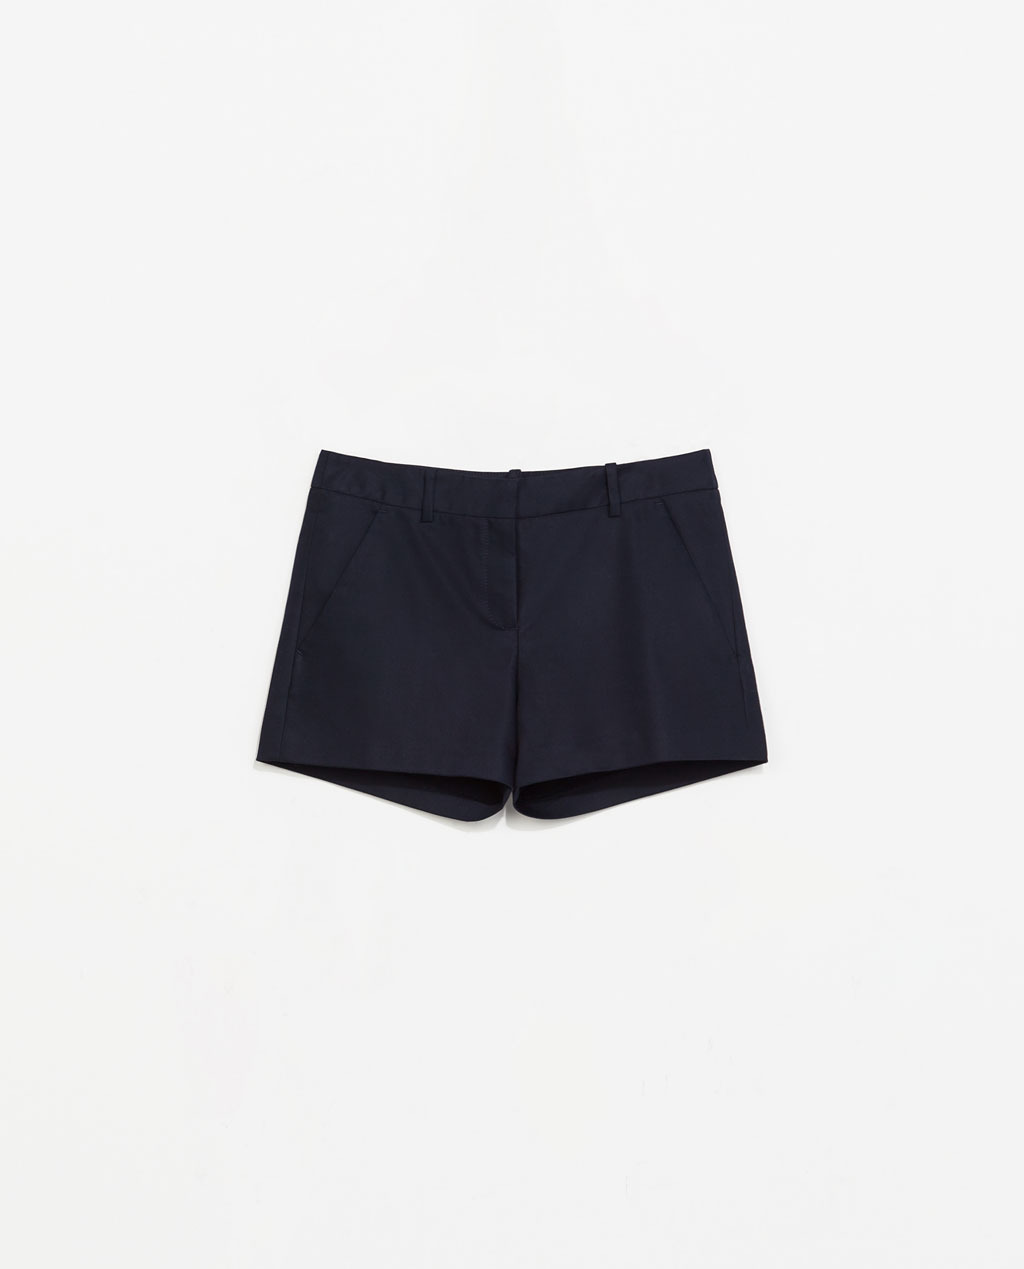 Double Fabric Bermuda Shorts - pattern: plain; waist: low rise; predominant colour: black; occasions: casual, evening, holiday; fibres: cotton - stretch; texture group: cotton feel fabrics; pattern type: fabric; season: s/s 2014; style: shorts; length: short shorts; fit: slim leg